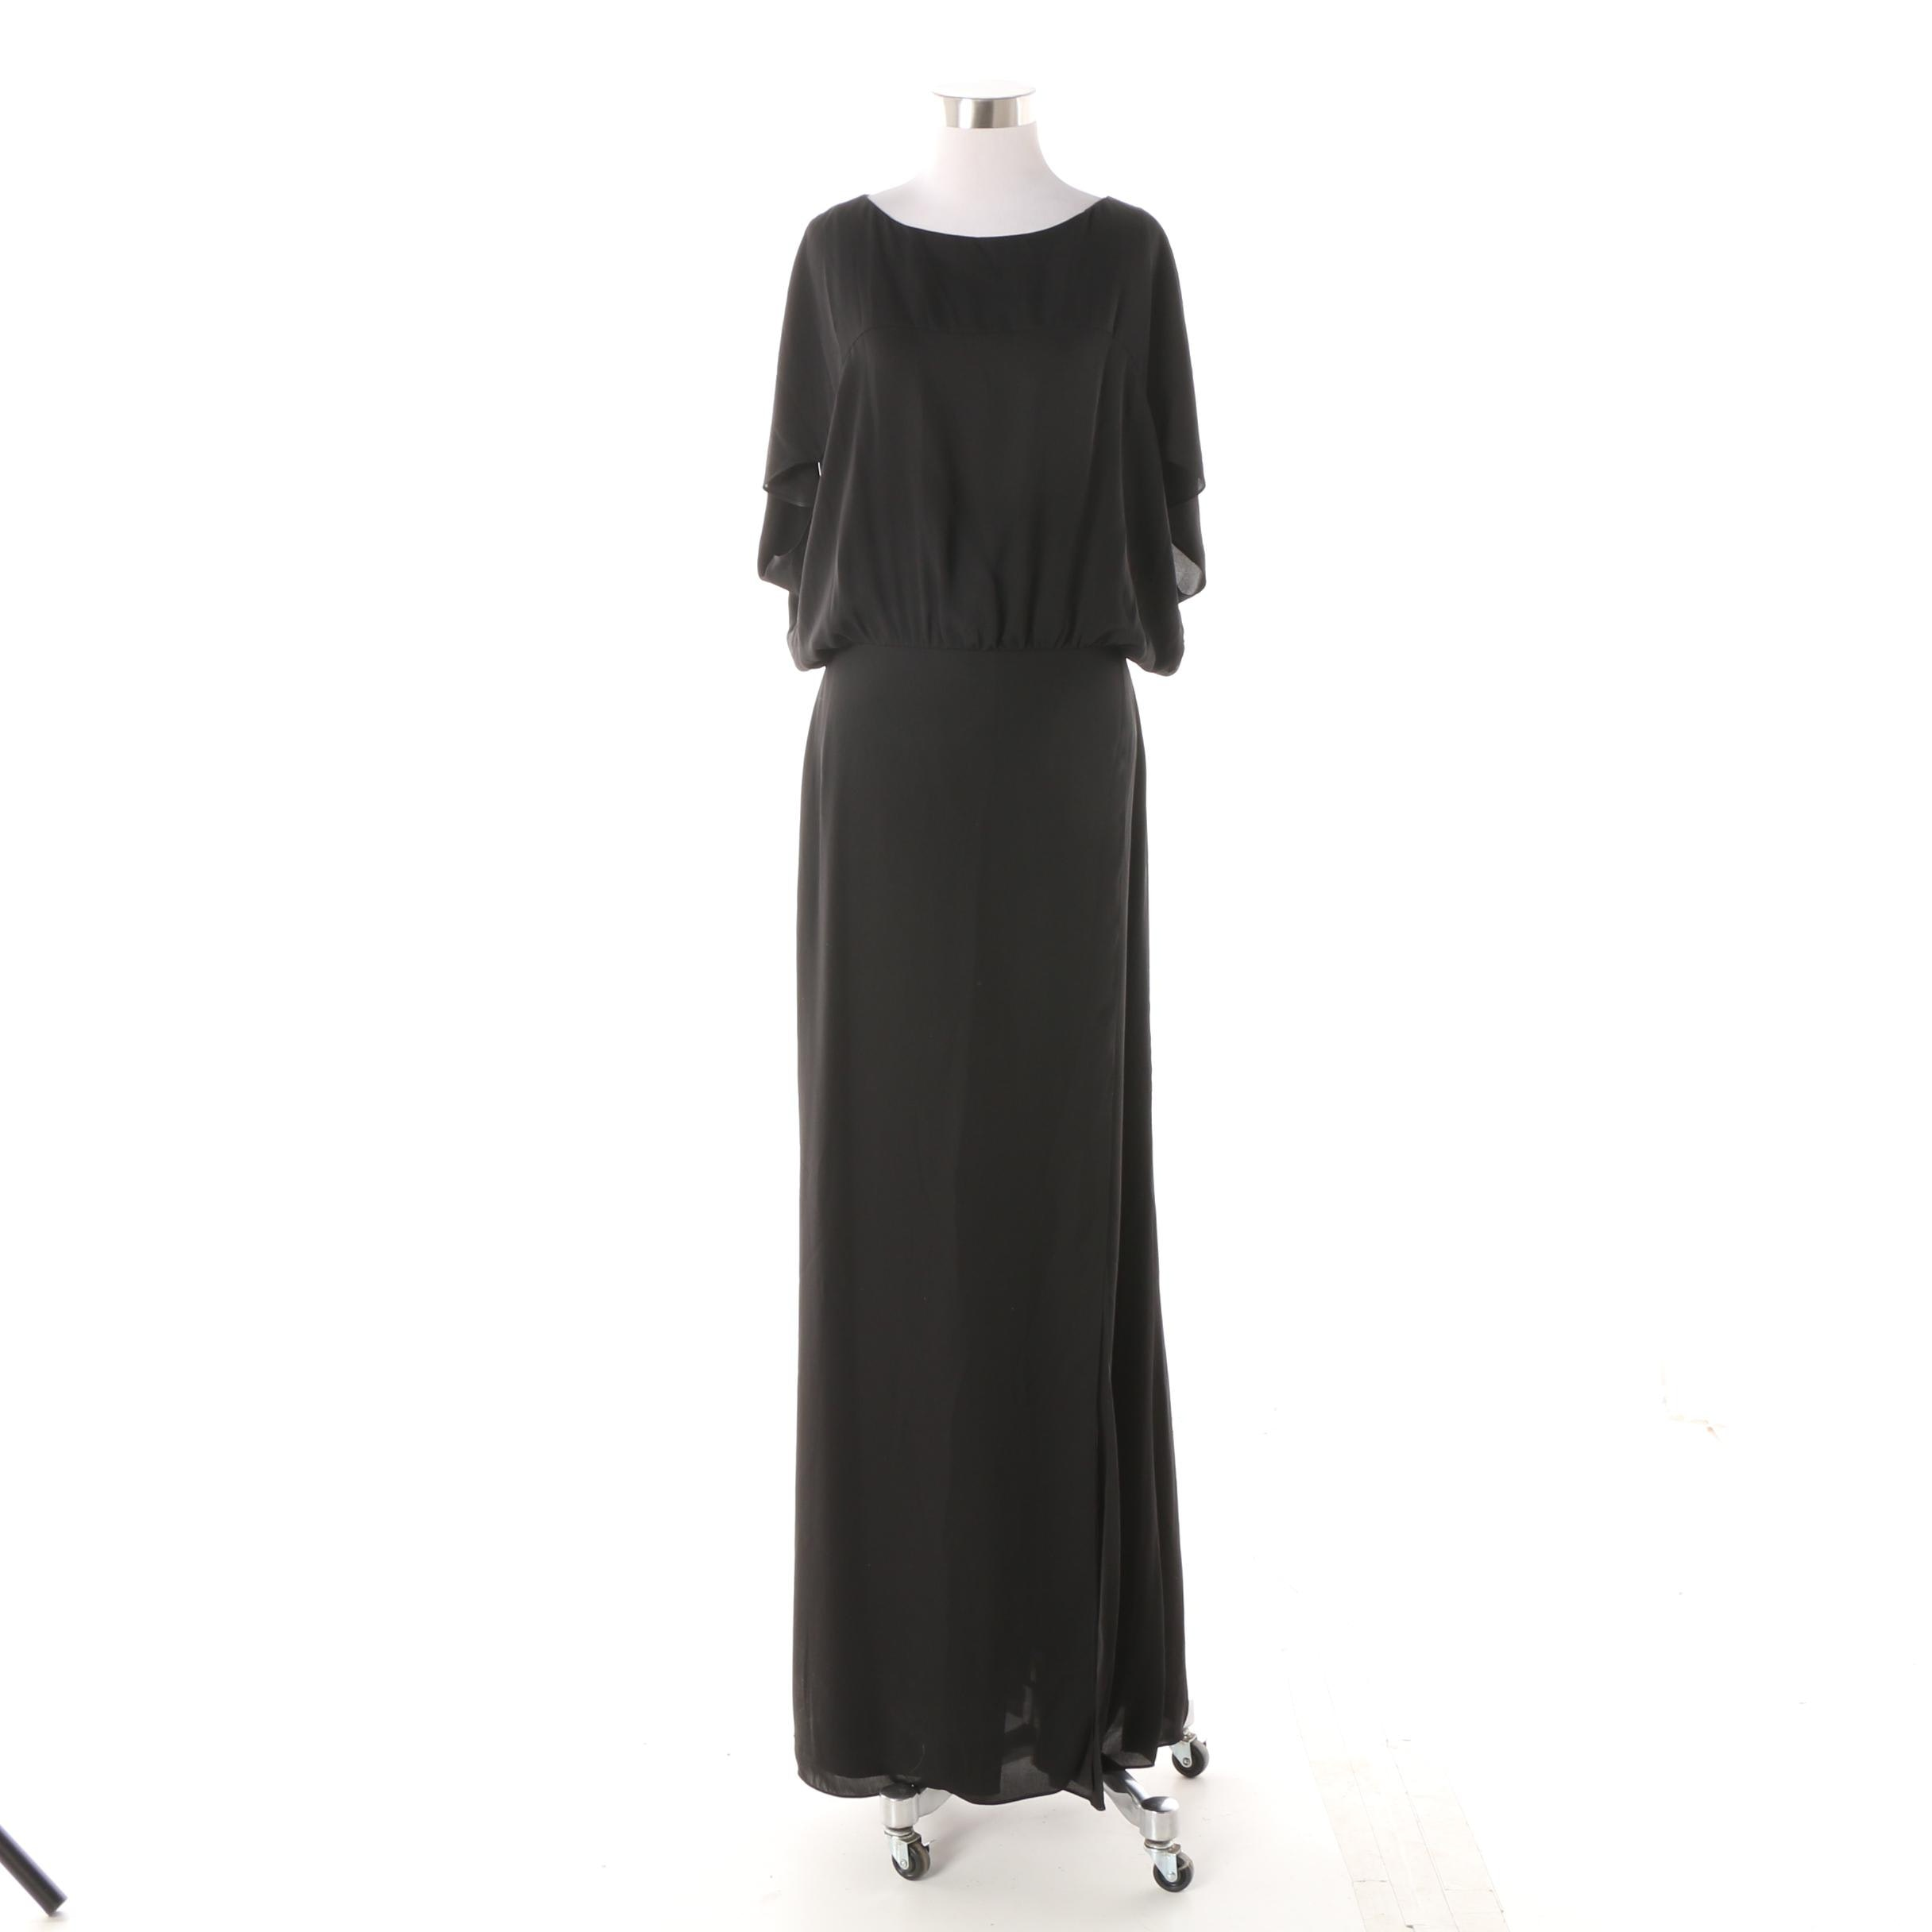 Halston Heritage Black Evening Dress with Original Tags